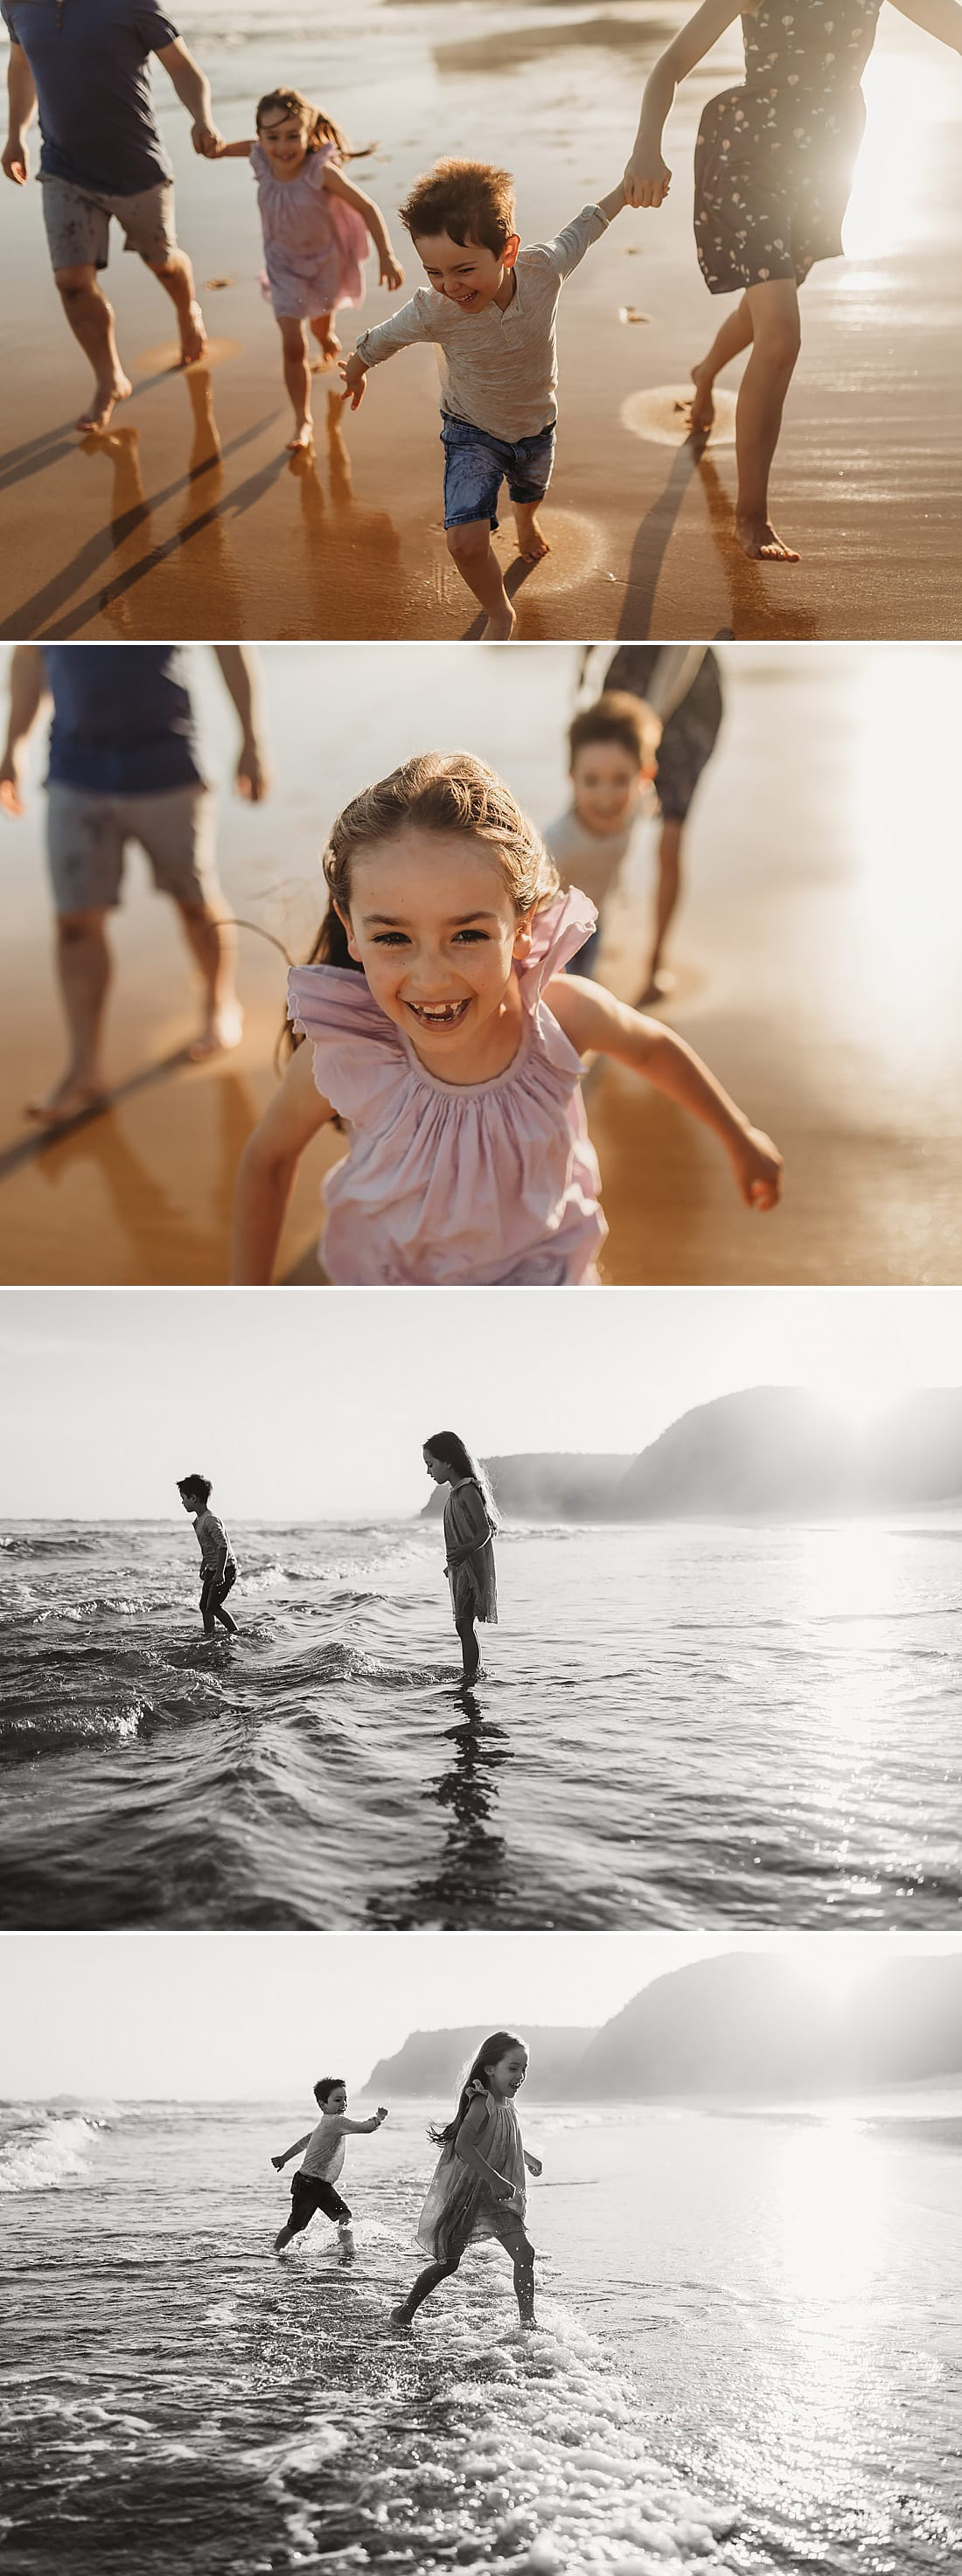 Fun-family-lifestyle-photography-beach-session